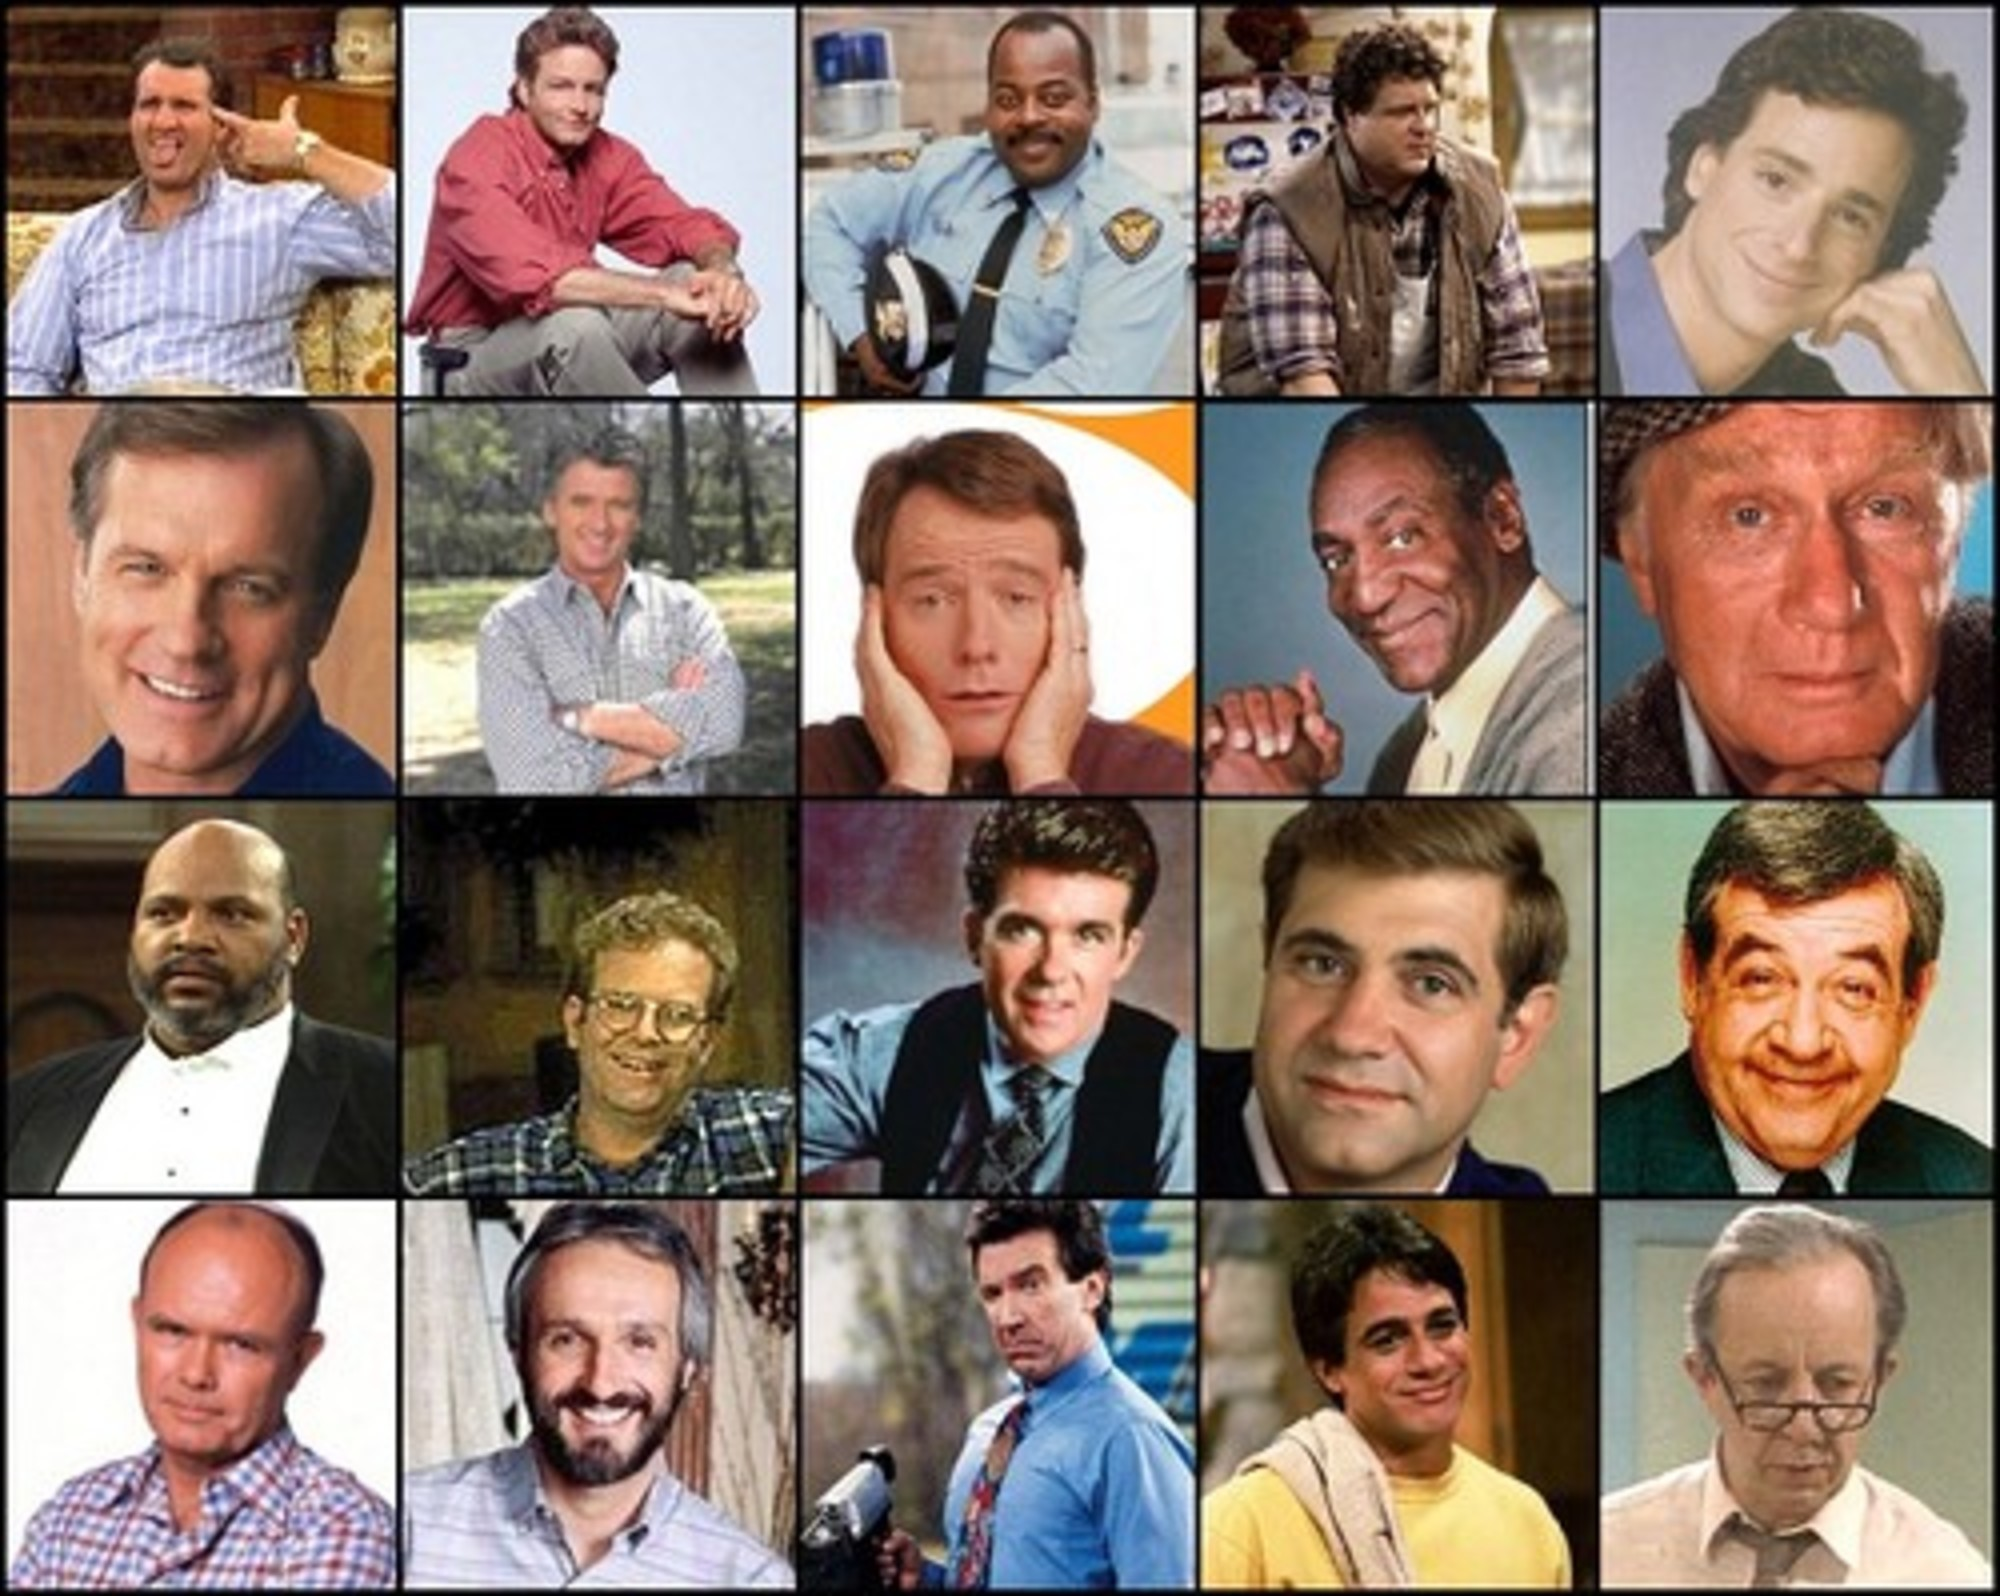 Top 5 Funniest TV Dads In Sitcoms